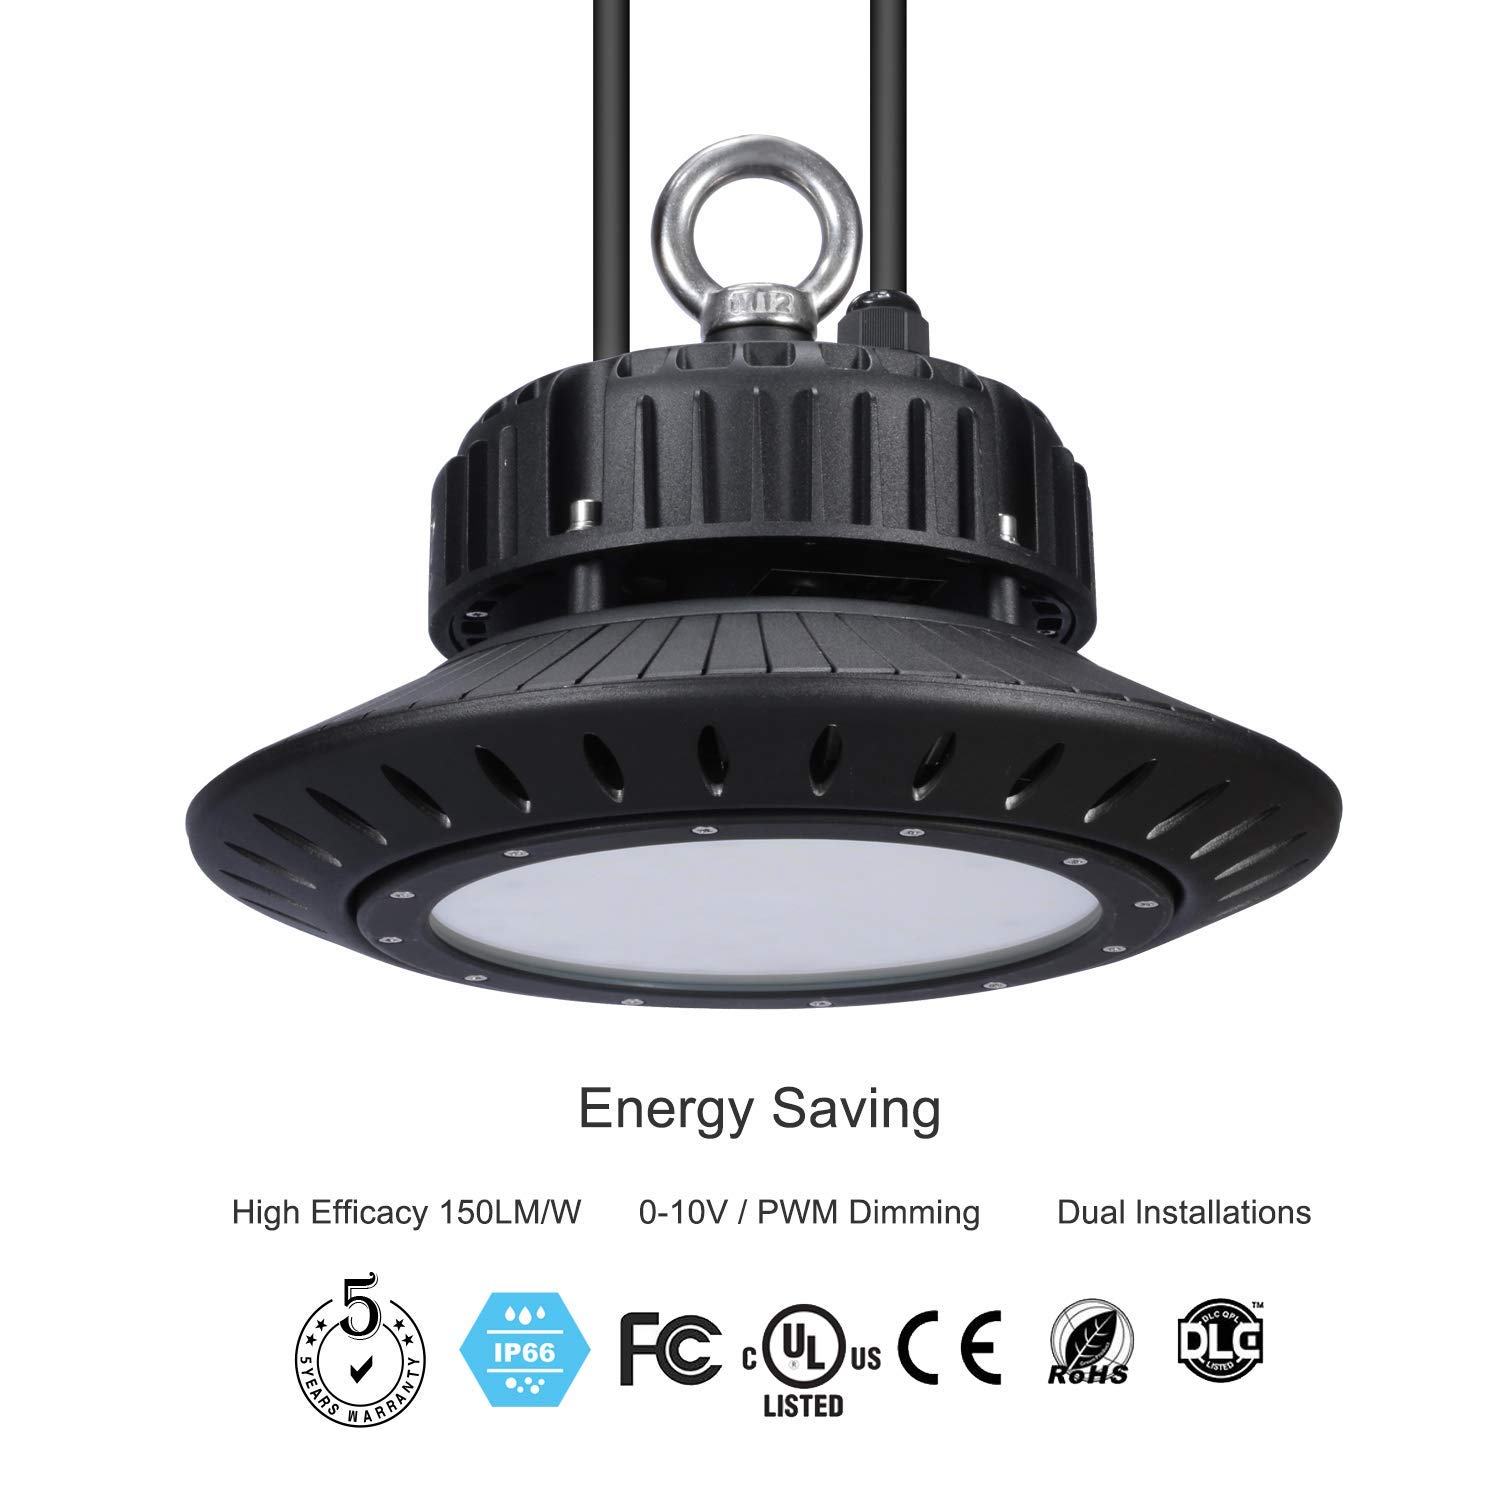 Sparkoe LED High Bay Light 150W 150Lm/W 22500Lm (180W 130Lm/W Equivalent) Dimmable 5000K Tempered Glass Cover Waterproof IP66 DLC & UL Beam Angle 120 ° Warehouse Factory Exhibition Stadium Lighting